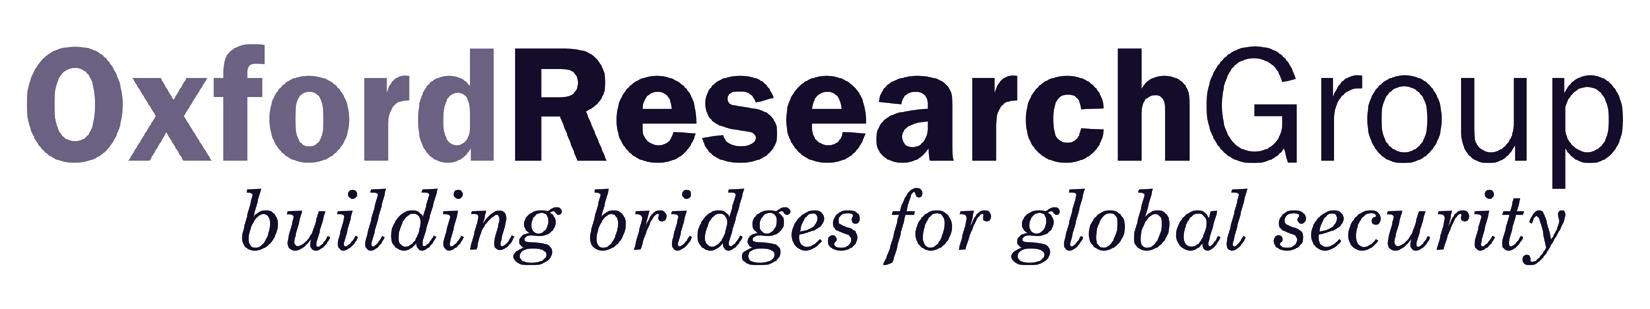 Oxford-Research-Group_Logo_1650x309.jpg